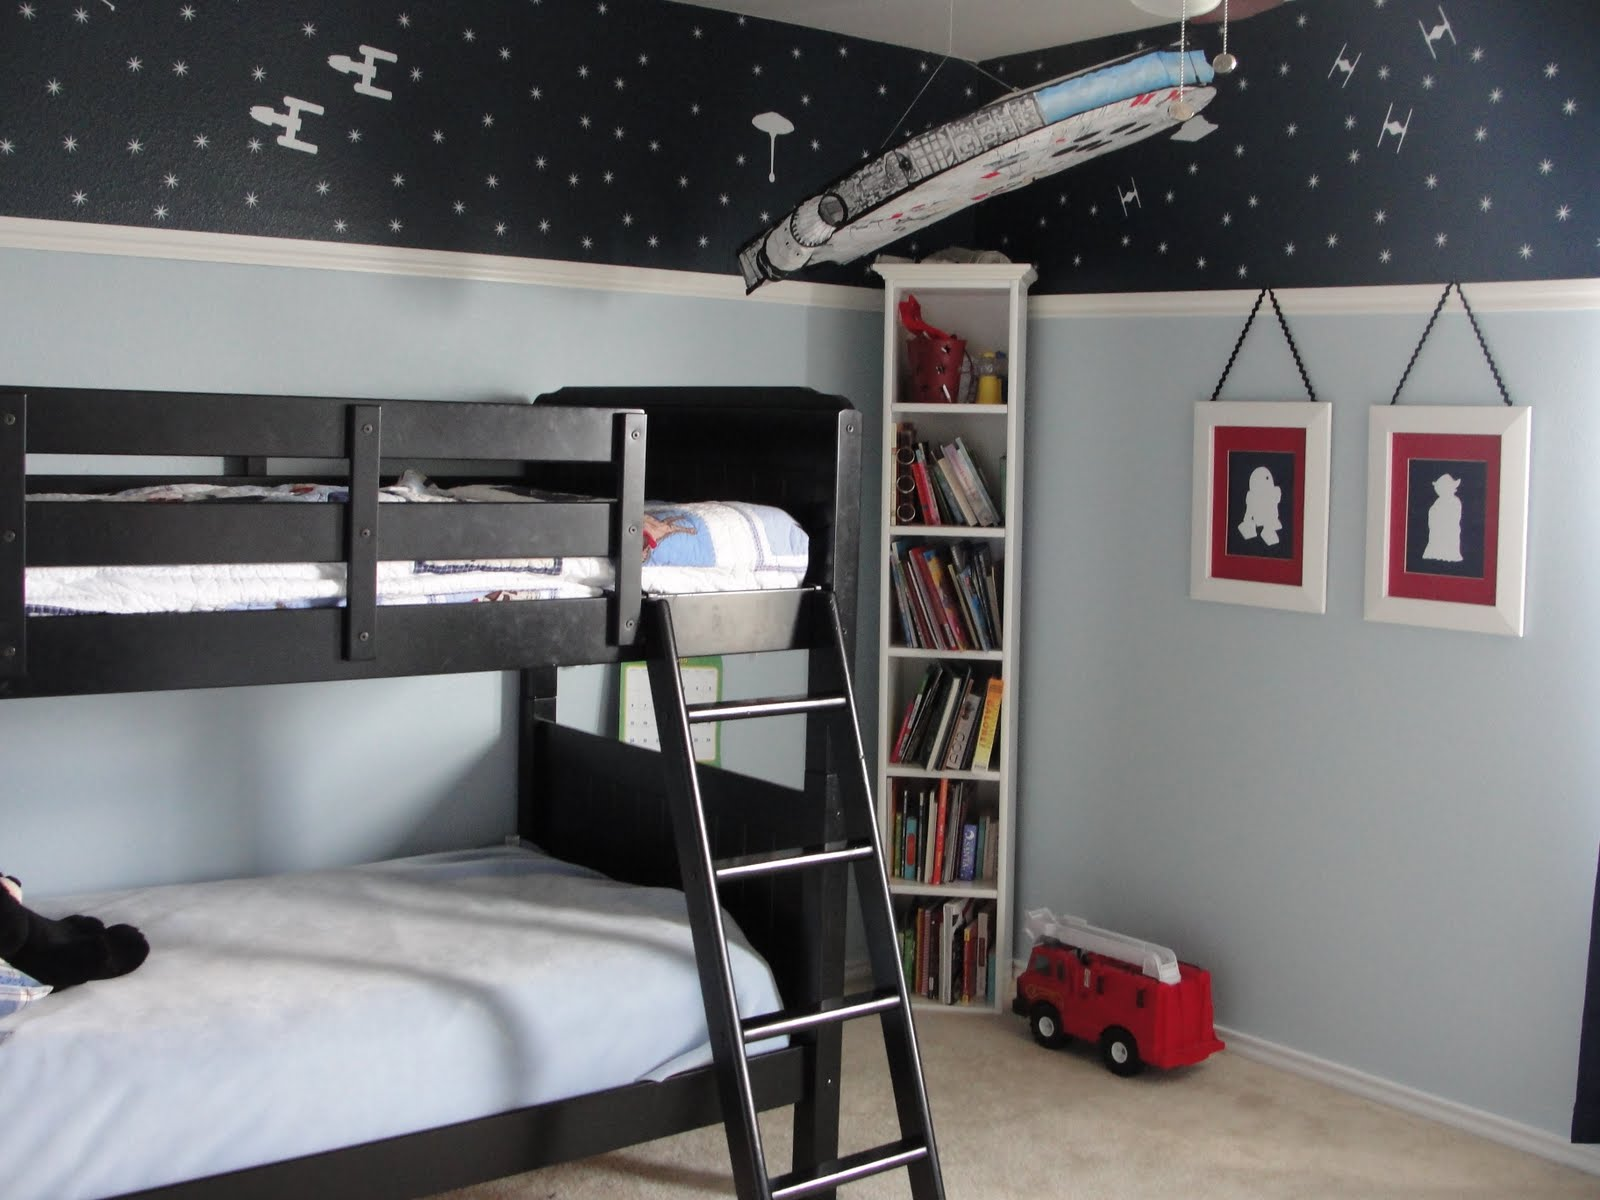 Star Wars Bedroom Ideas : Youll notice a heavy usage of vinyl decals. I geuss I just cant hel...